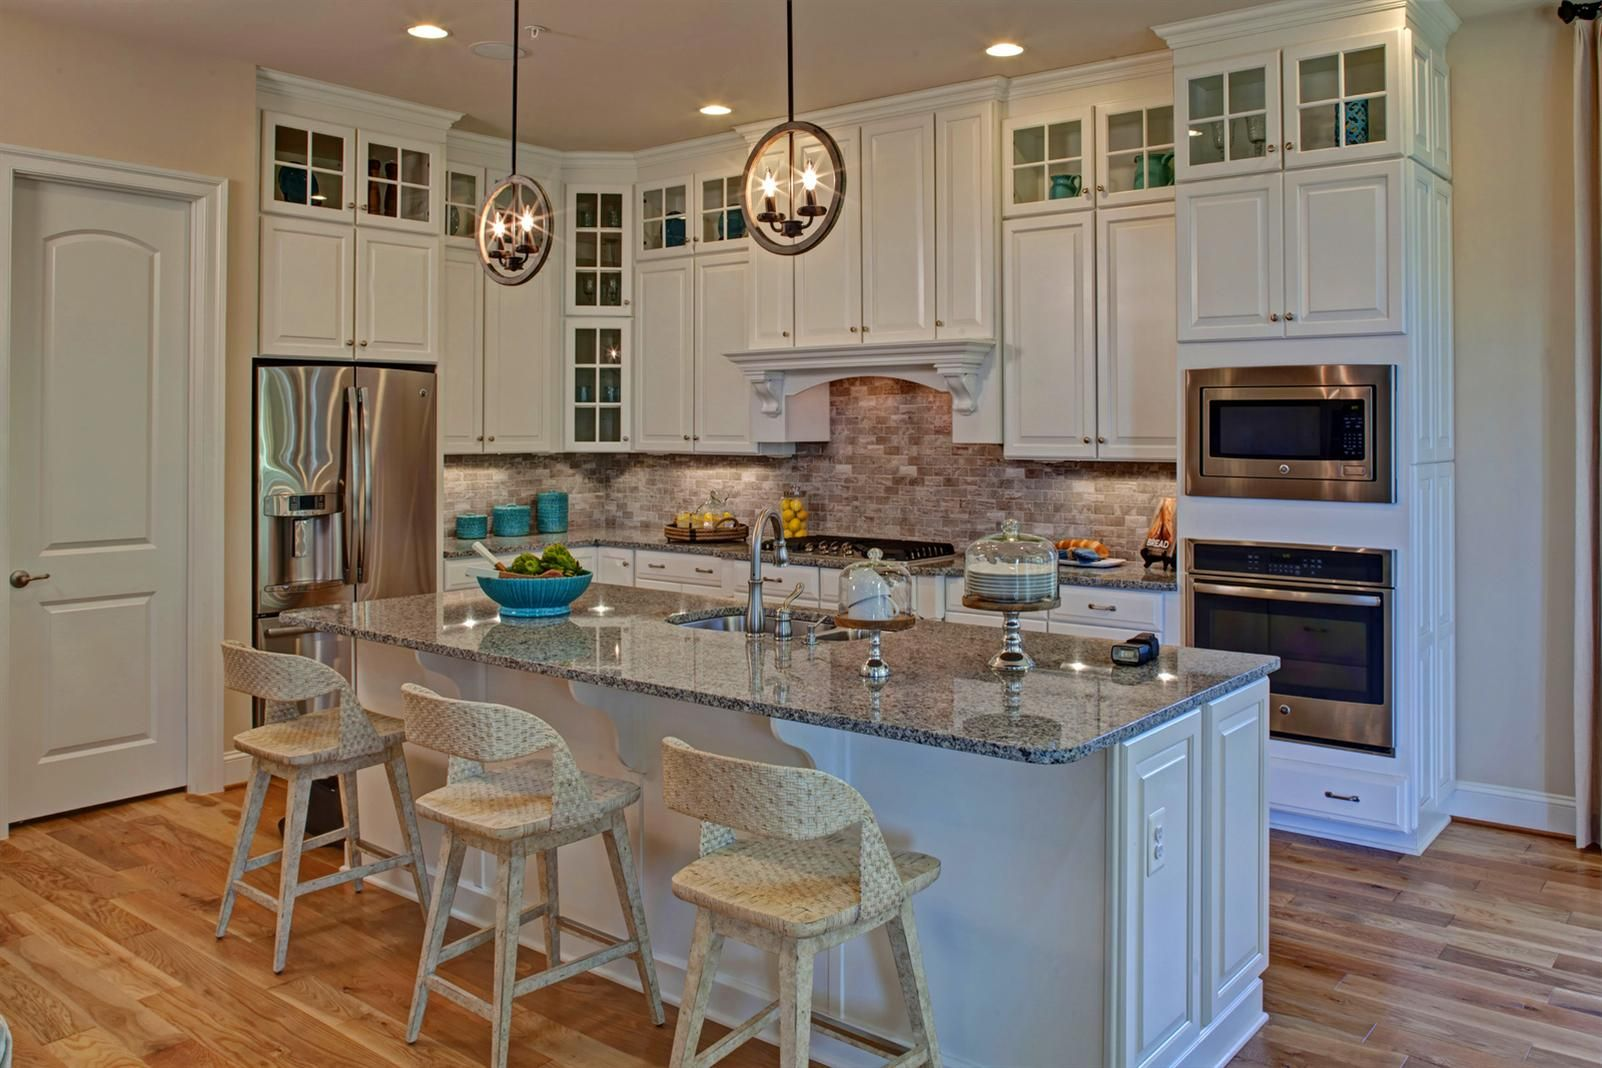 Imaginecozy Staging A Kitchen: Pin By Paula Haymon On Model Homes